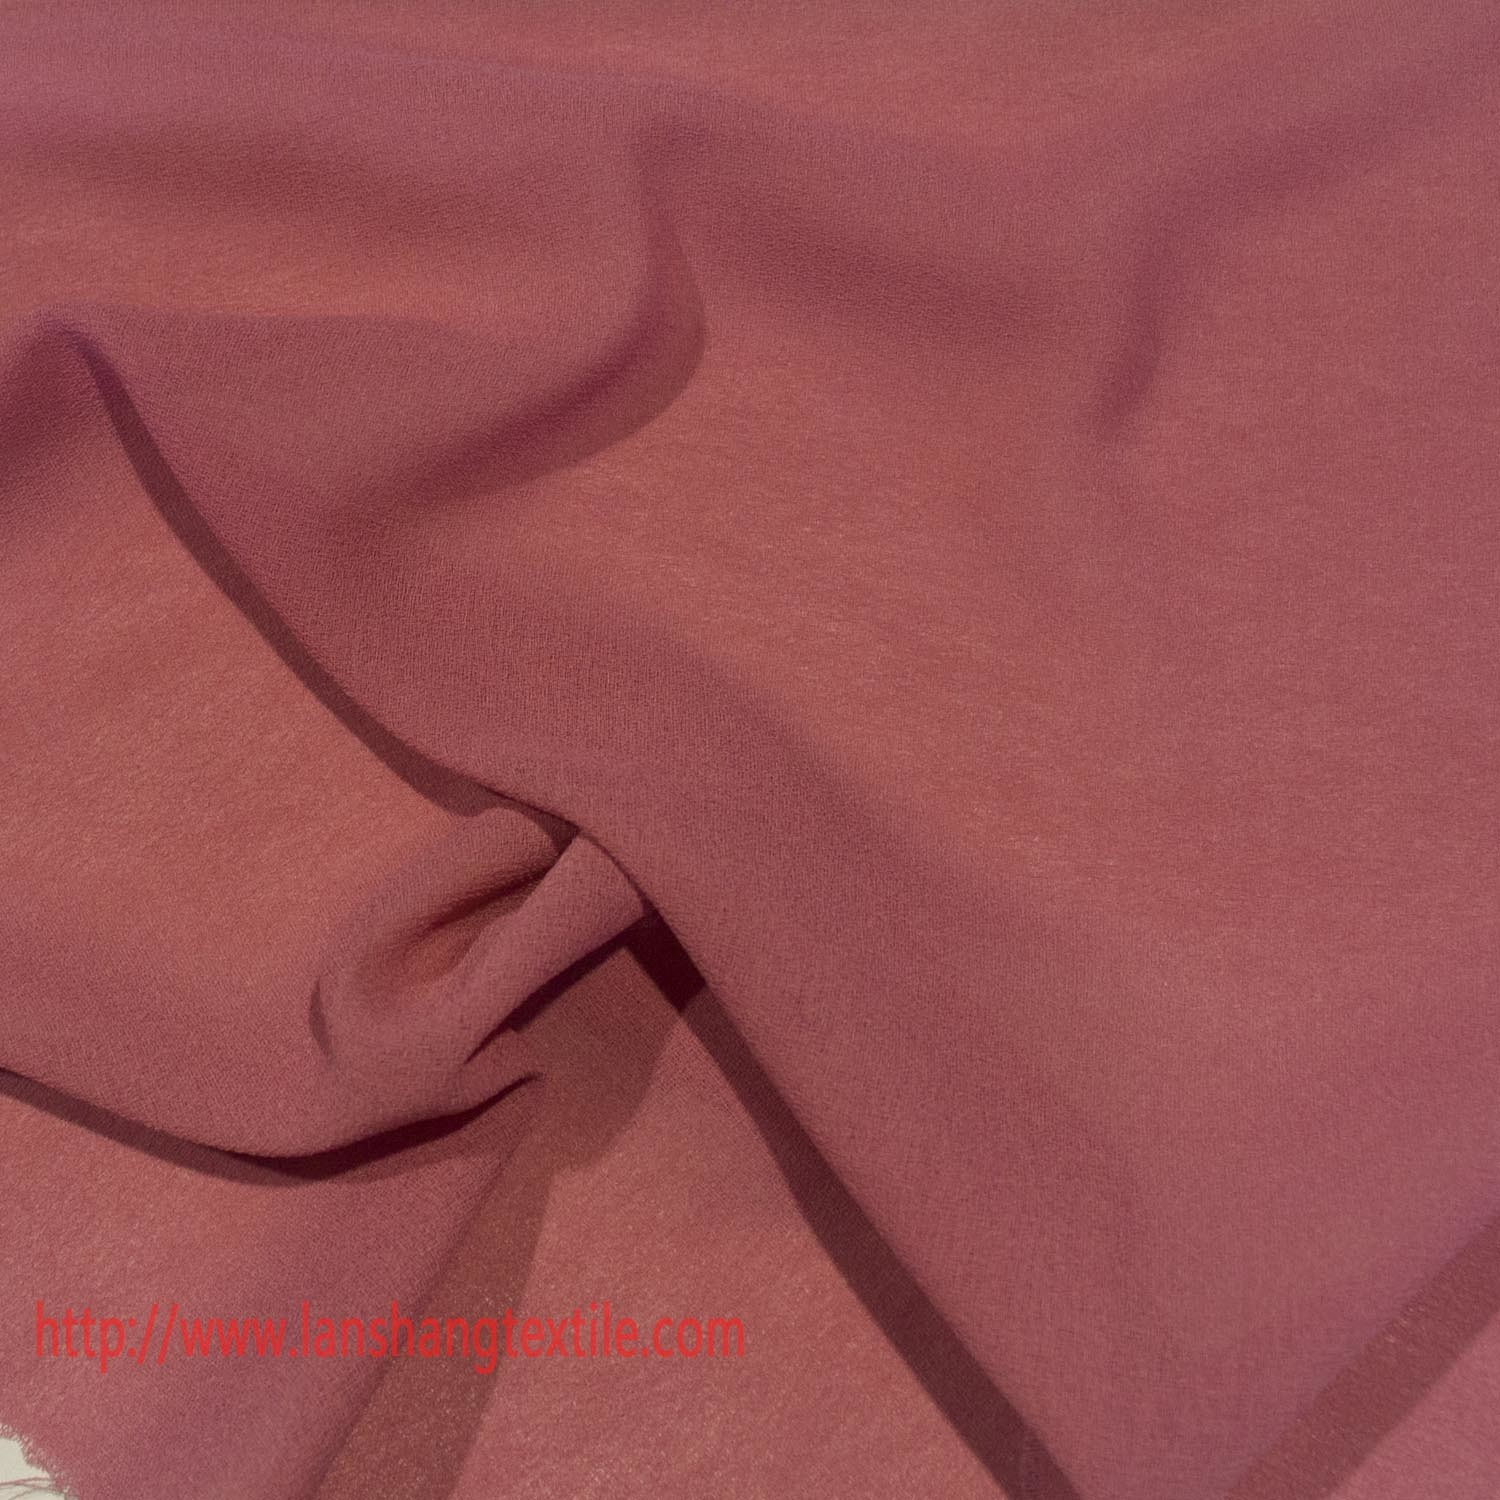 Polyester Fabric Chemical Fabric Dyed Fabric Garment Fabric Woven Fabric for Garment Dress Home Textile